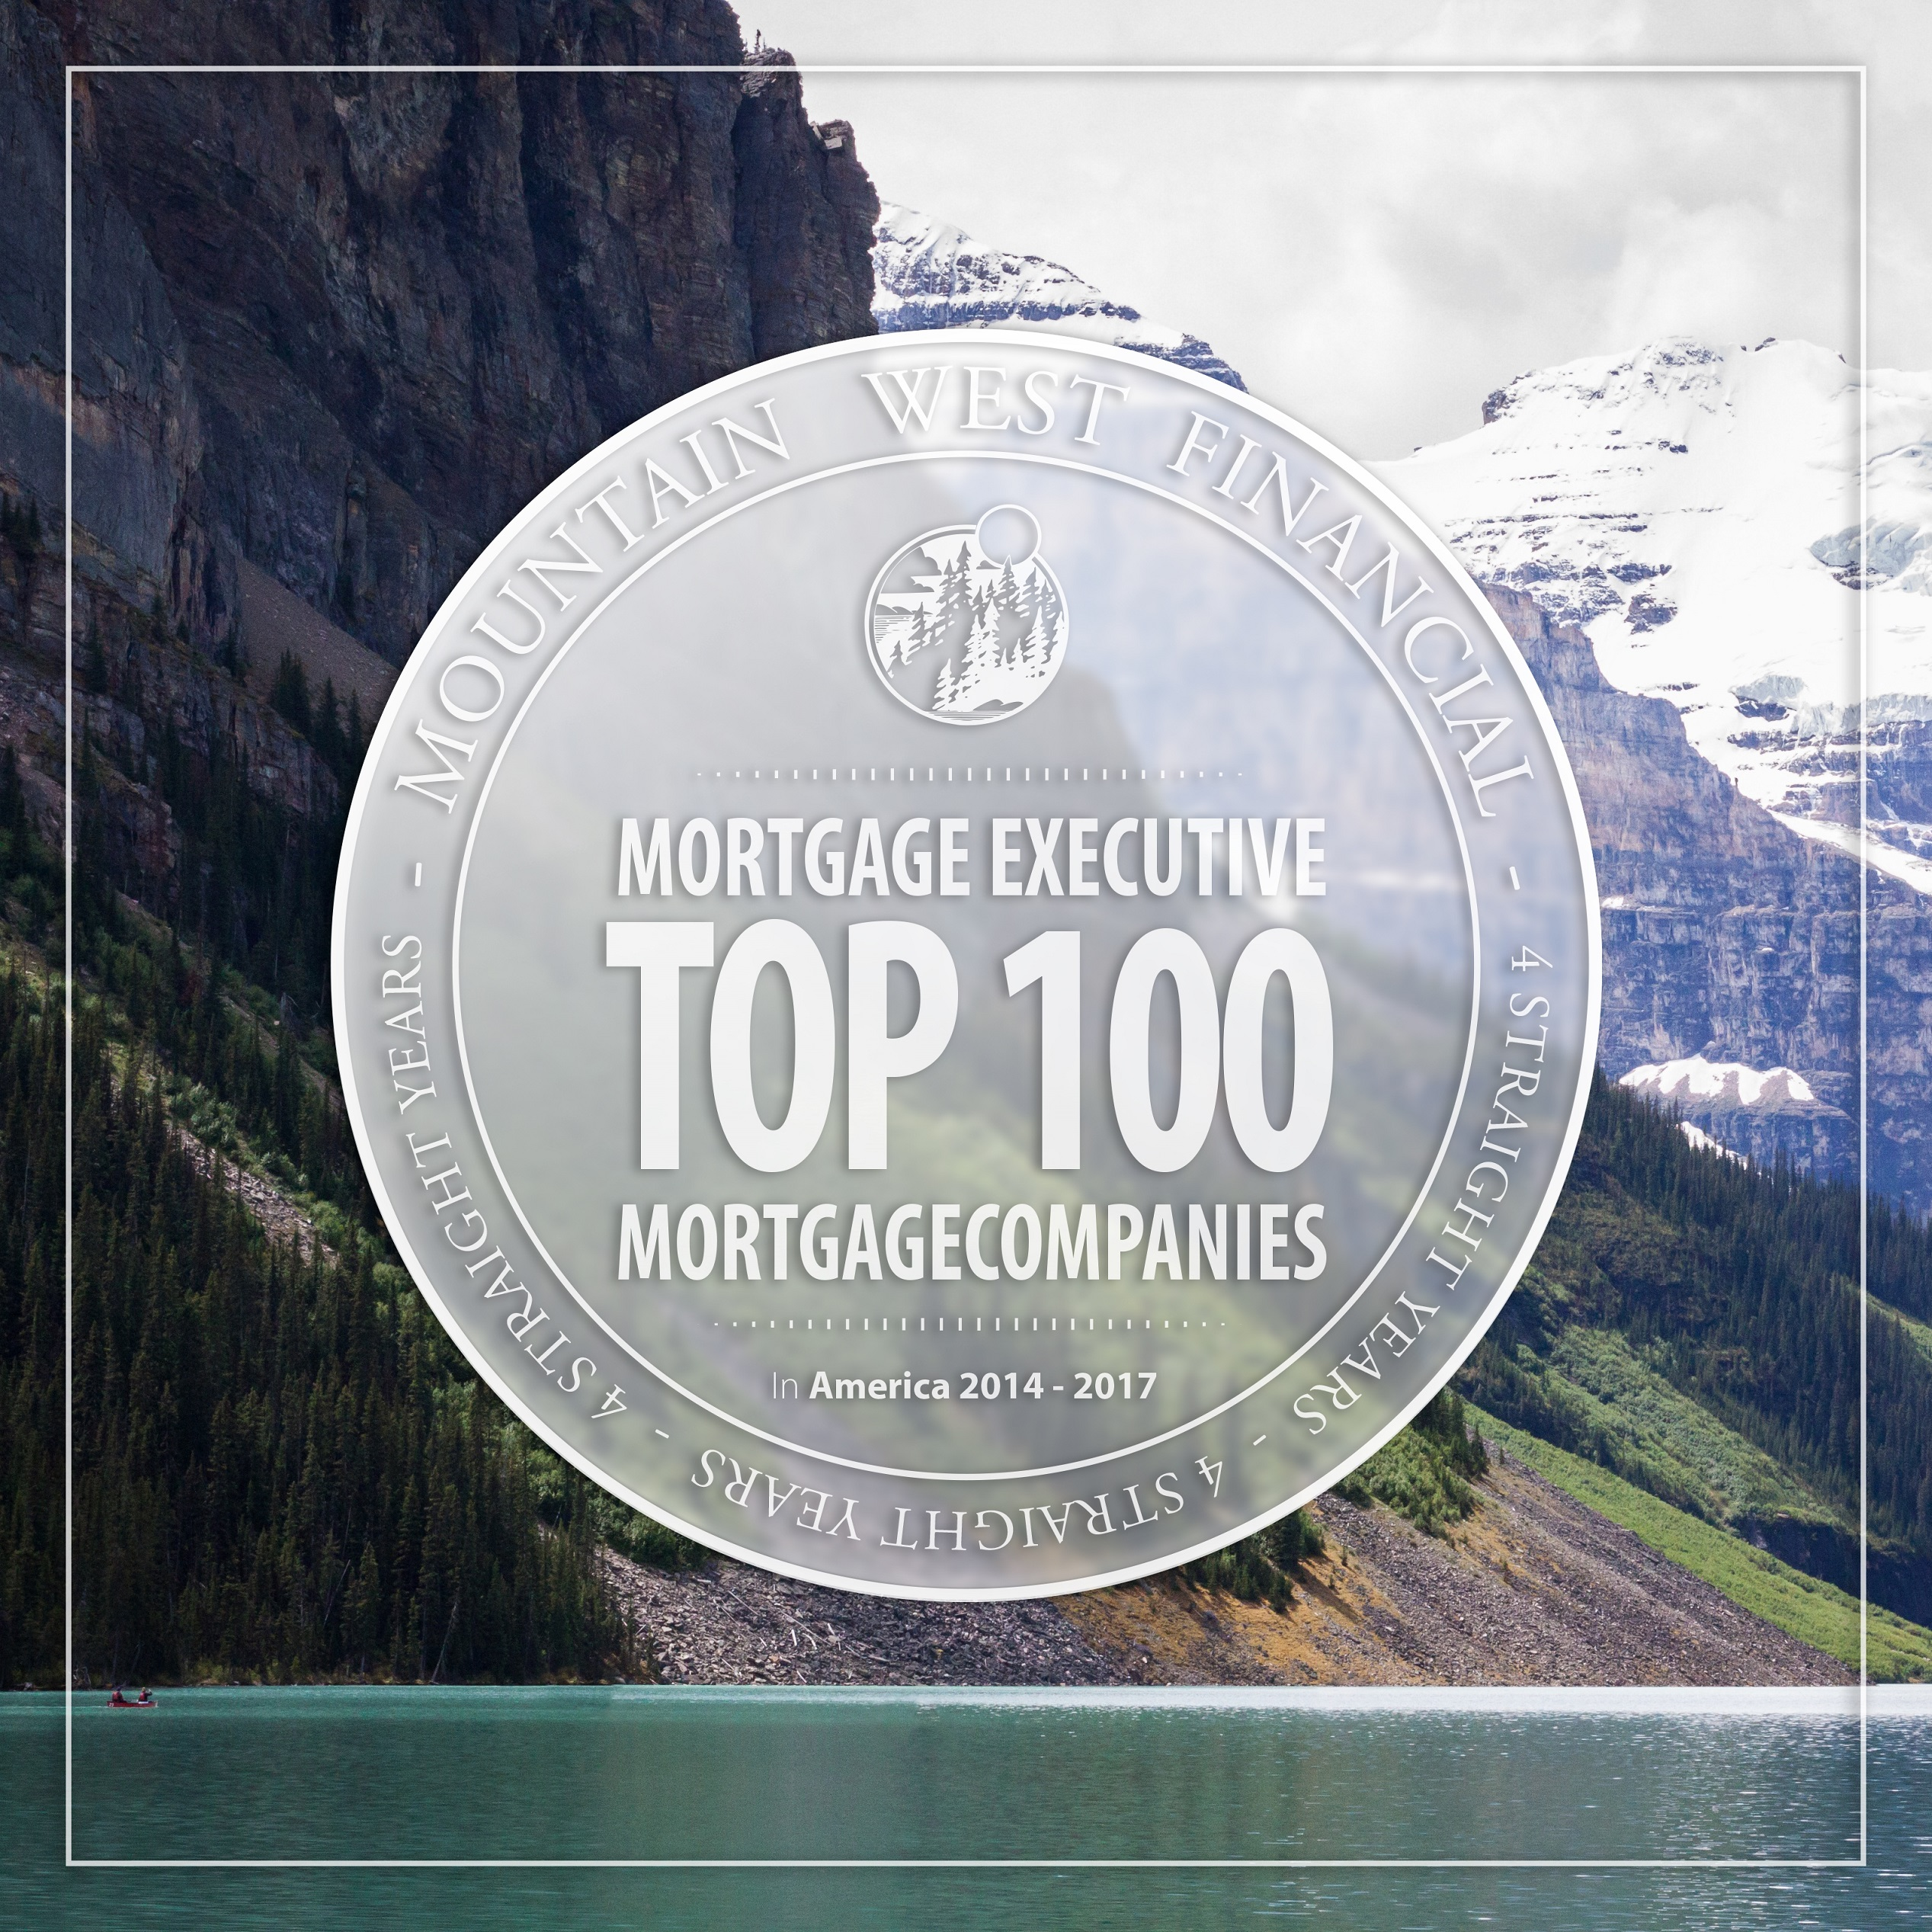 Mountain West Financial, Inc. Wins National Award From Mortgage Executive Magazine in 2017